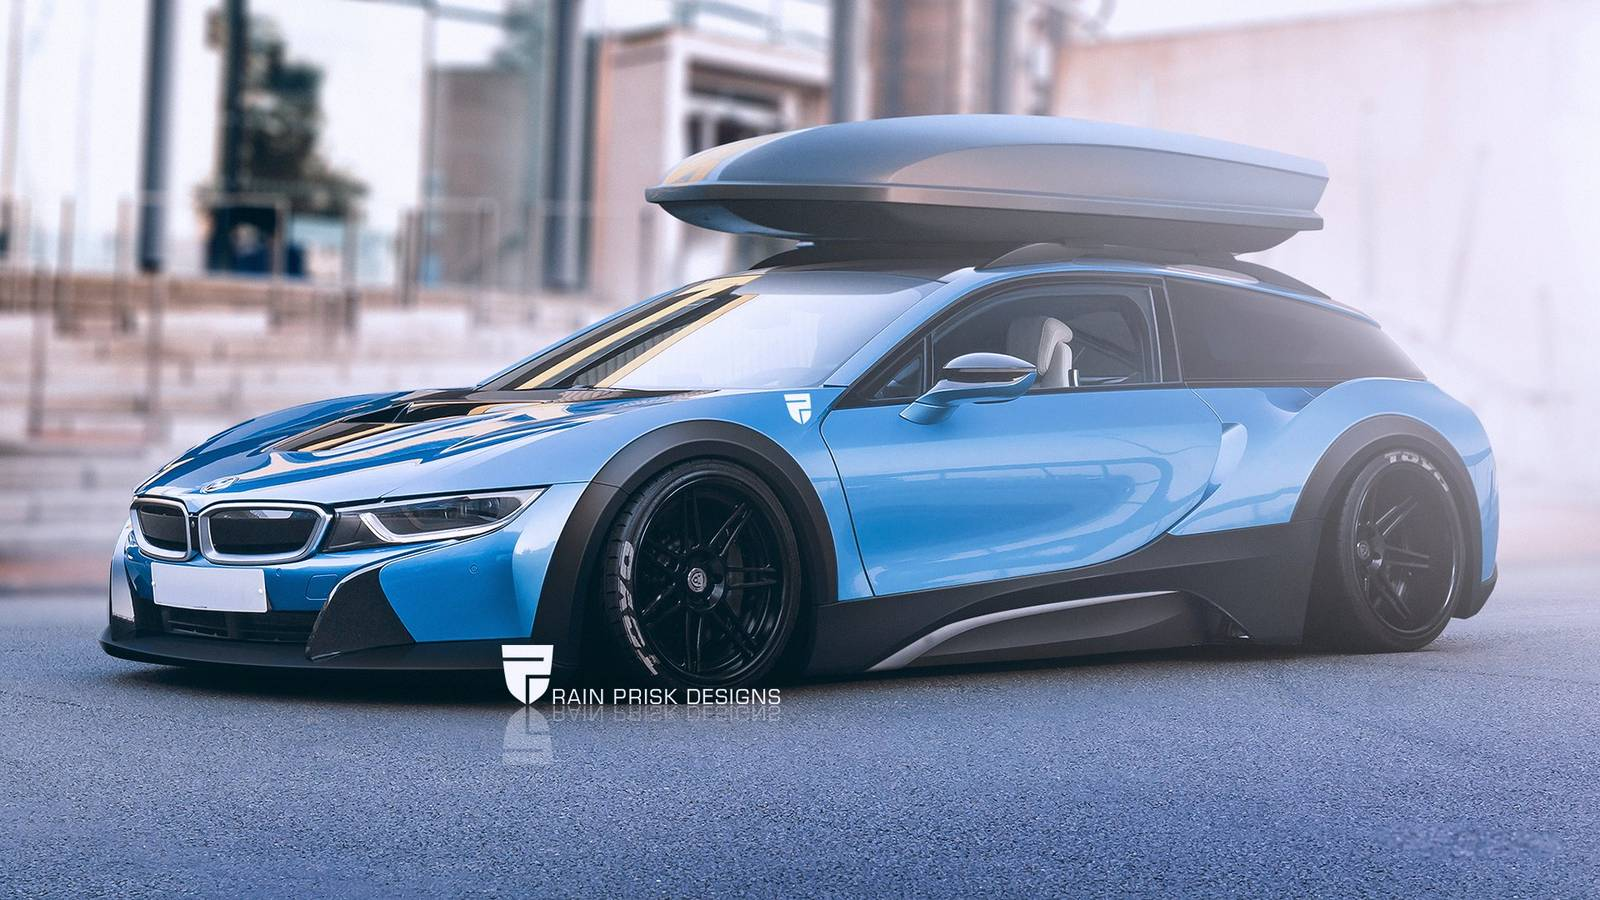 1. BMW I8 Station Wagon